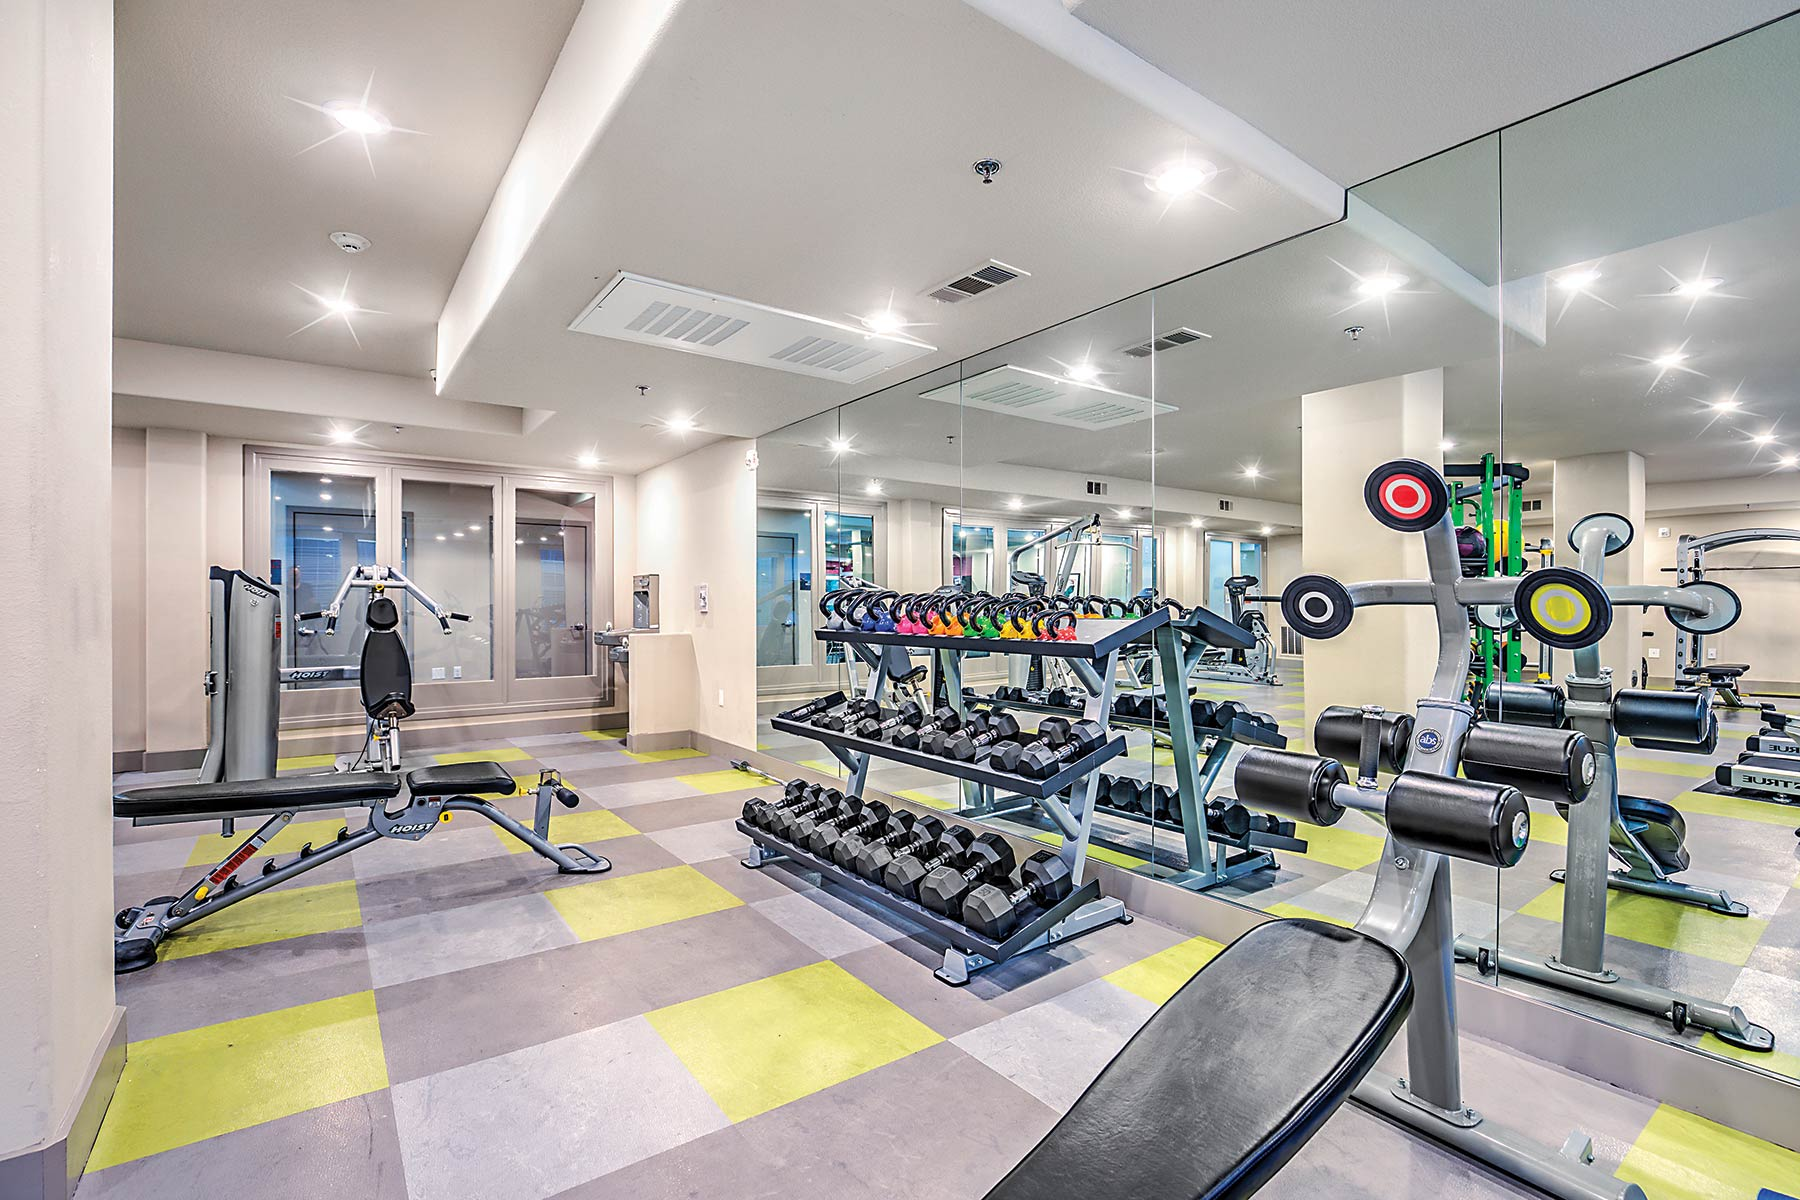 Spacious fitness center with mirrored wall, weights rack, and weight and cardio machines.